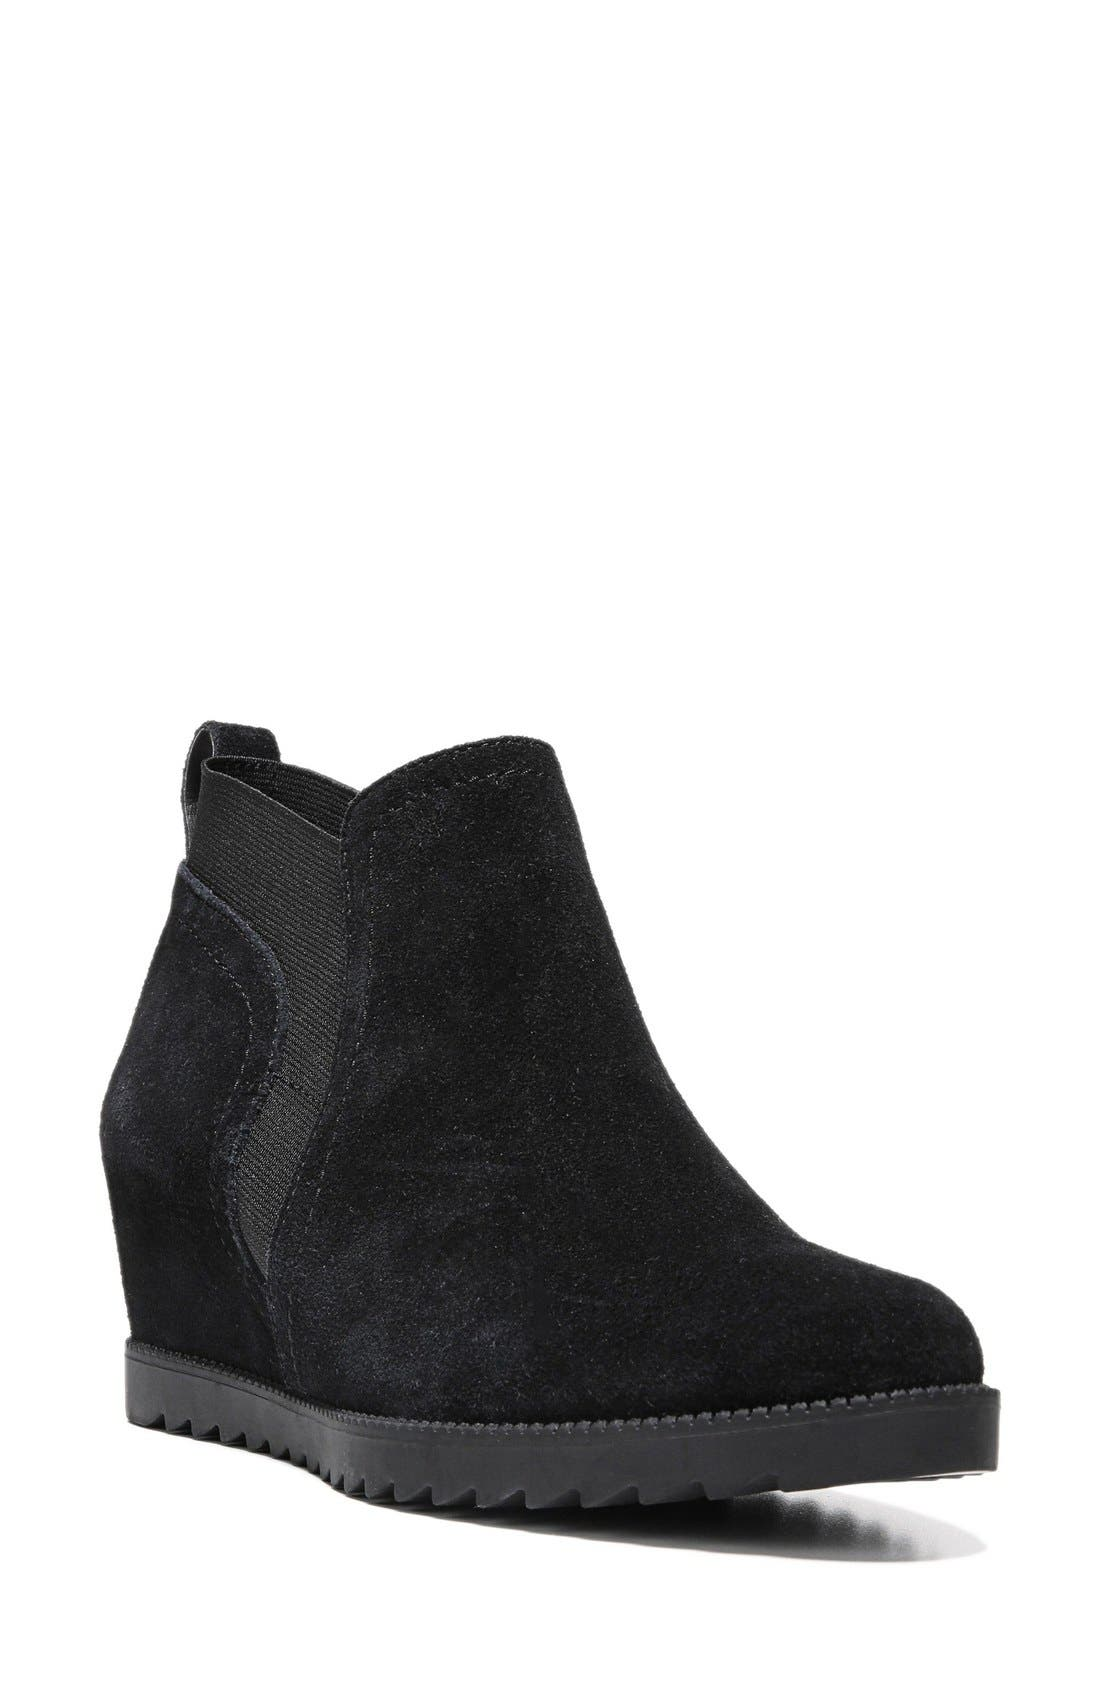 NATURALIZER 'Darena' Wedge Bootie